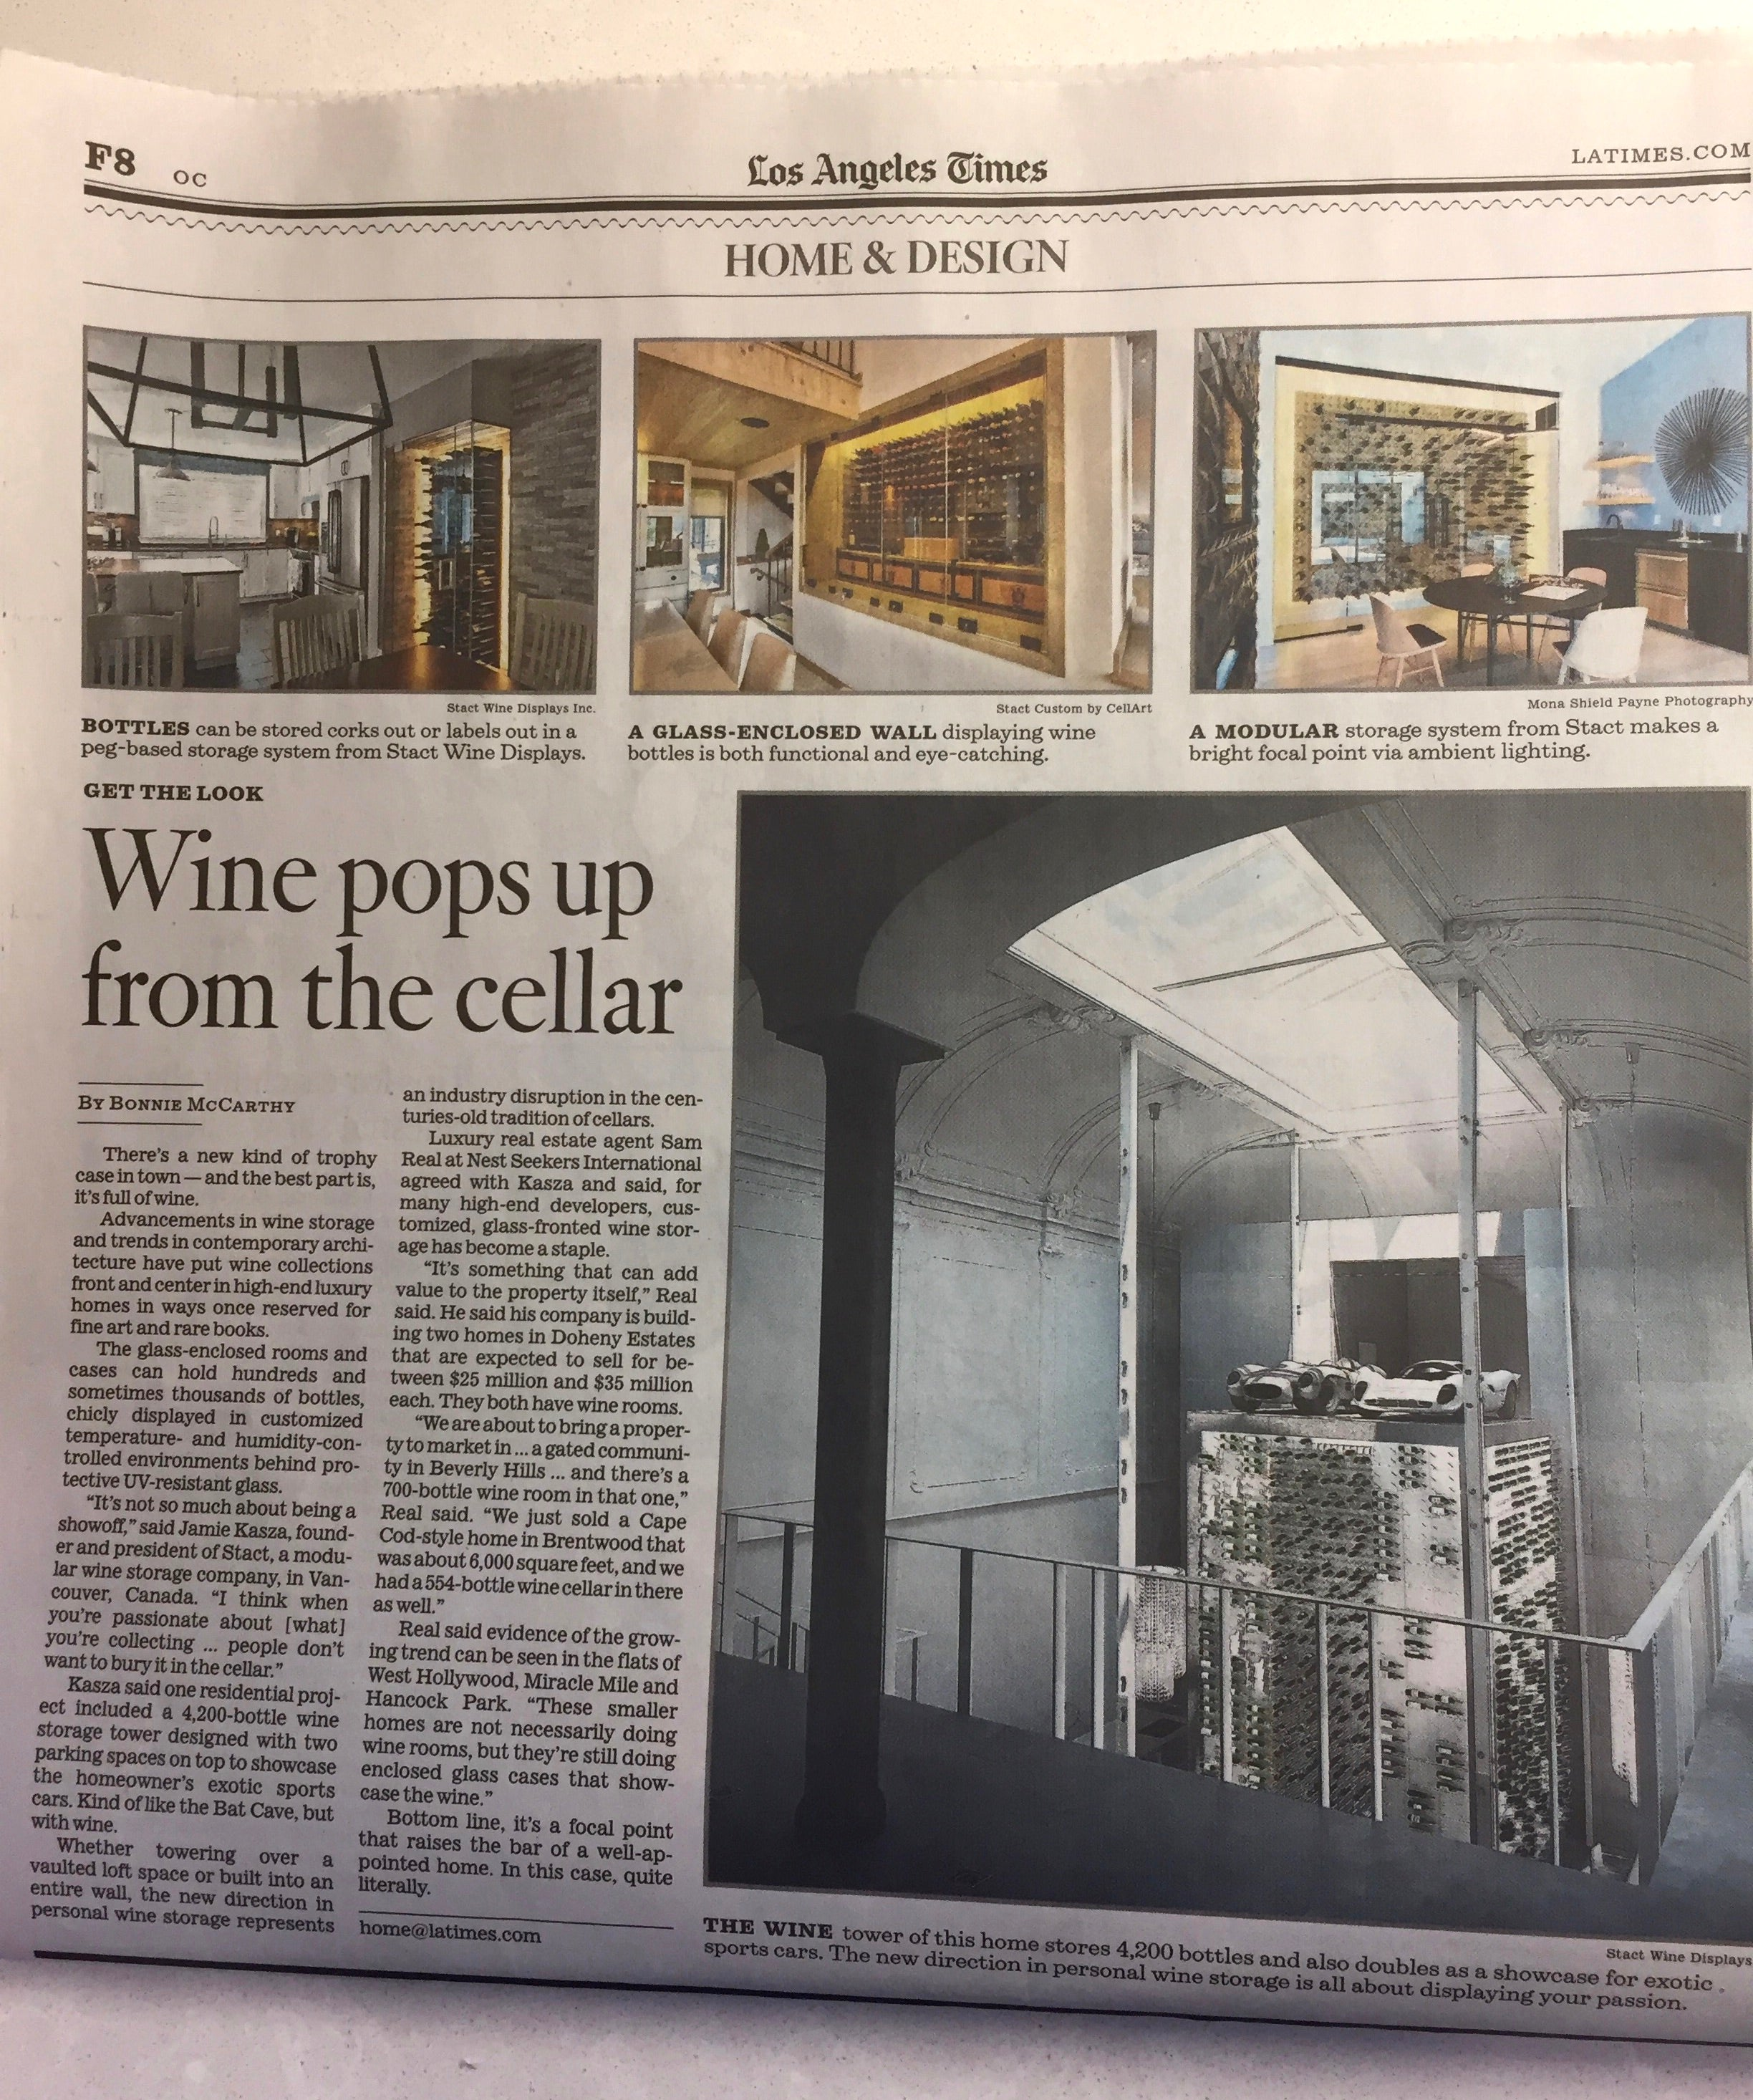 glass wine rooms - los angeles times